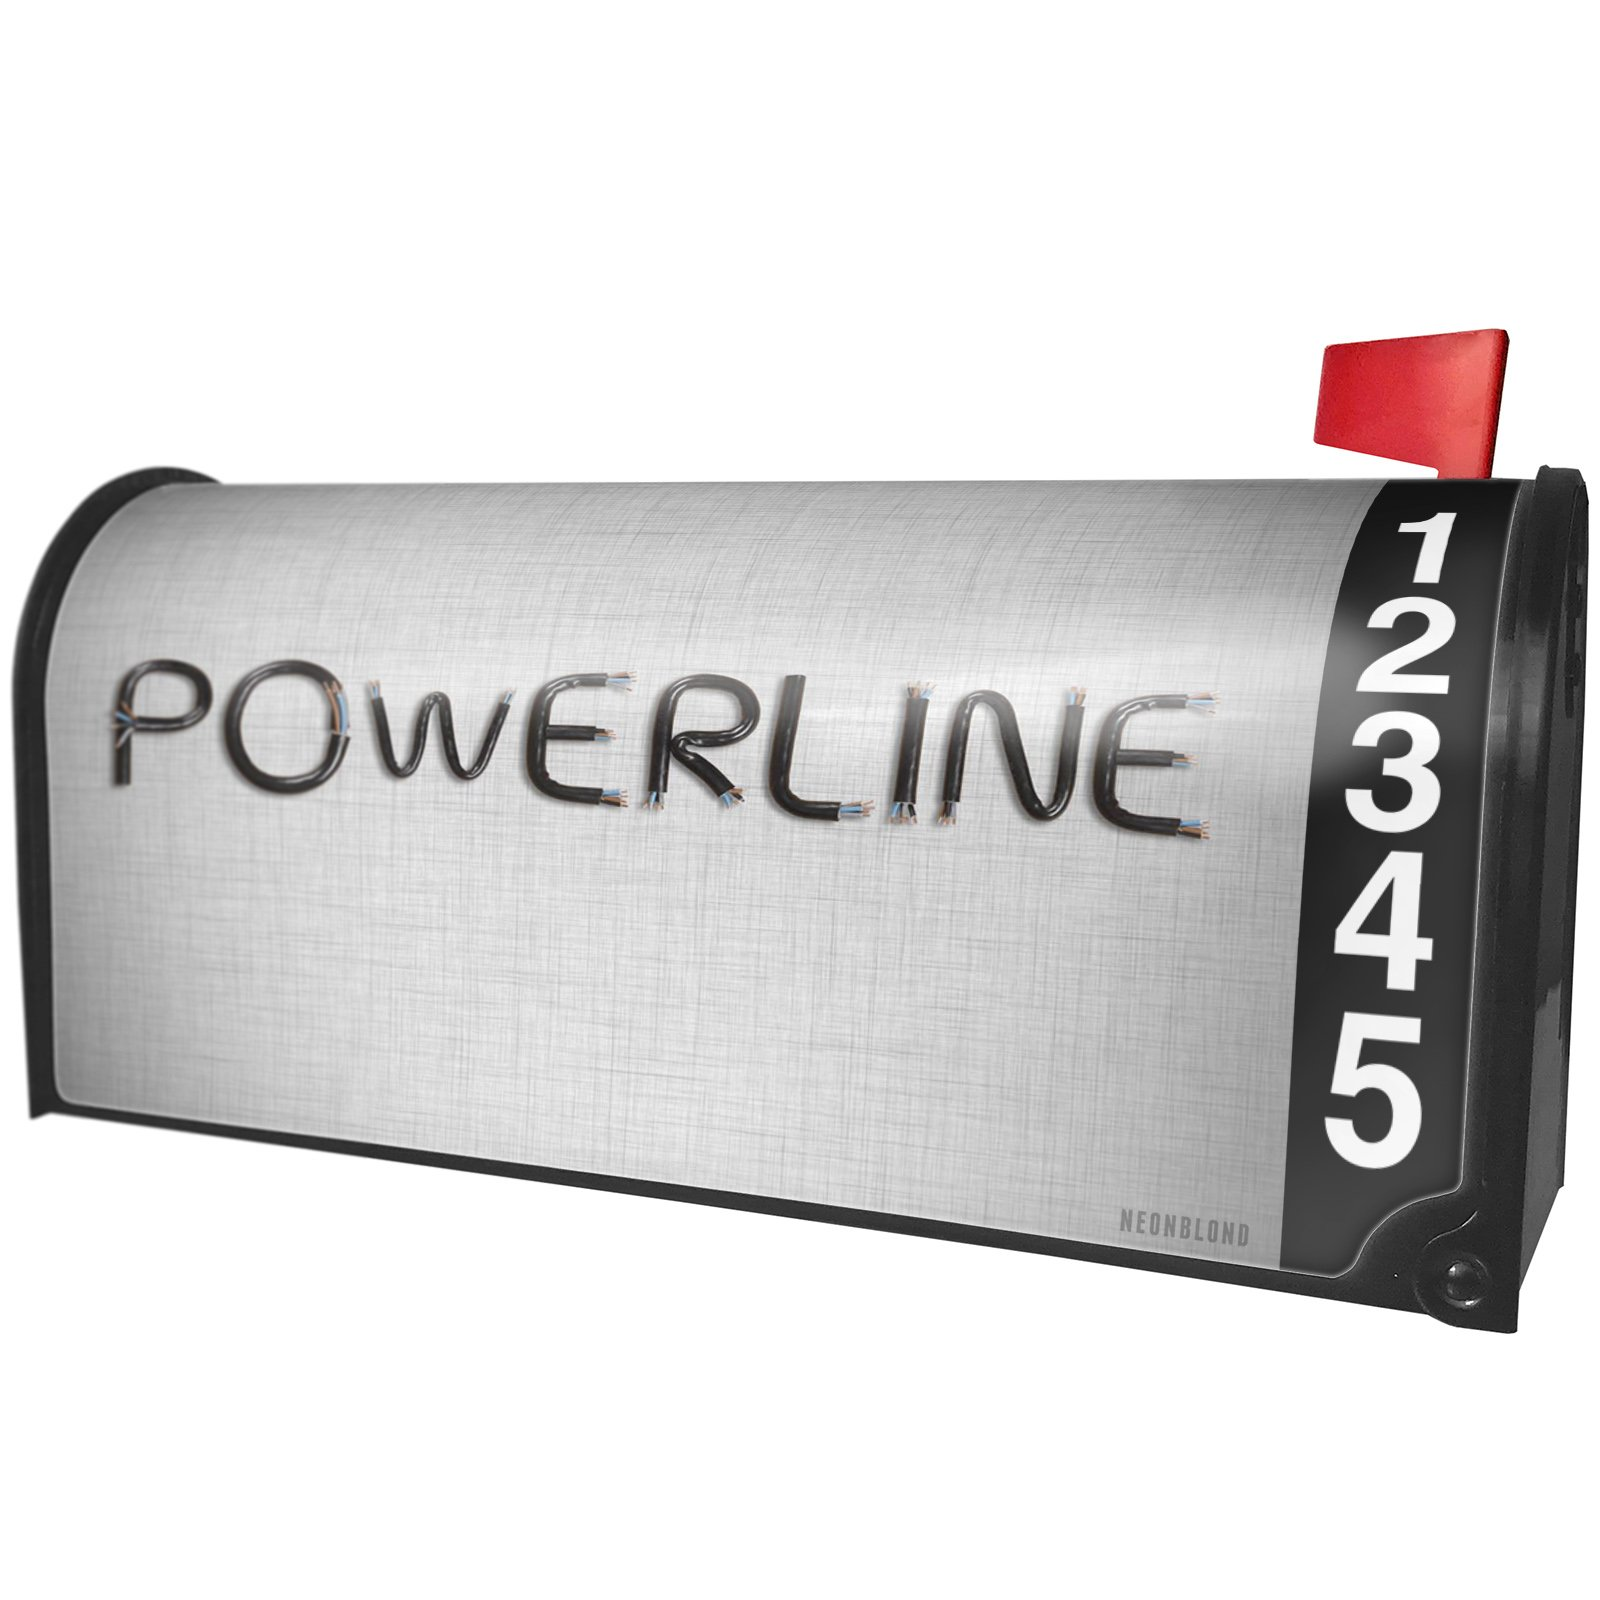 NEONBLOND Powerline Electronics Wires and Cables Magnetic Mailbox Cover Custom Numbers